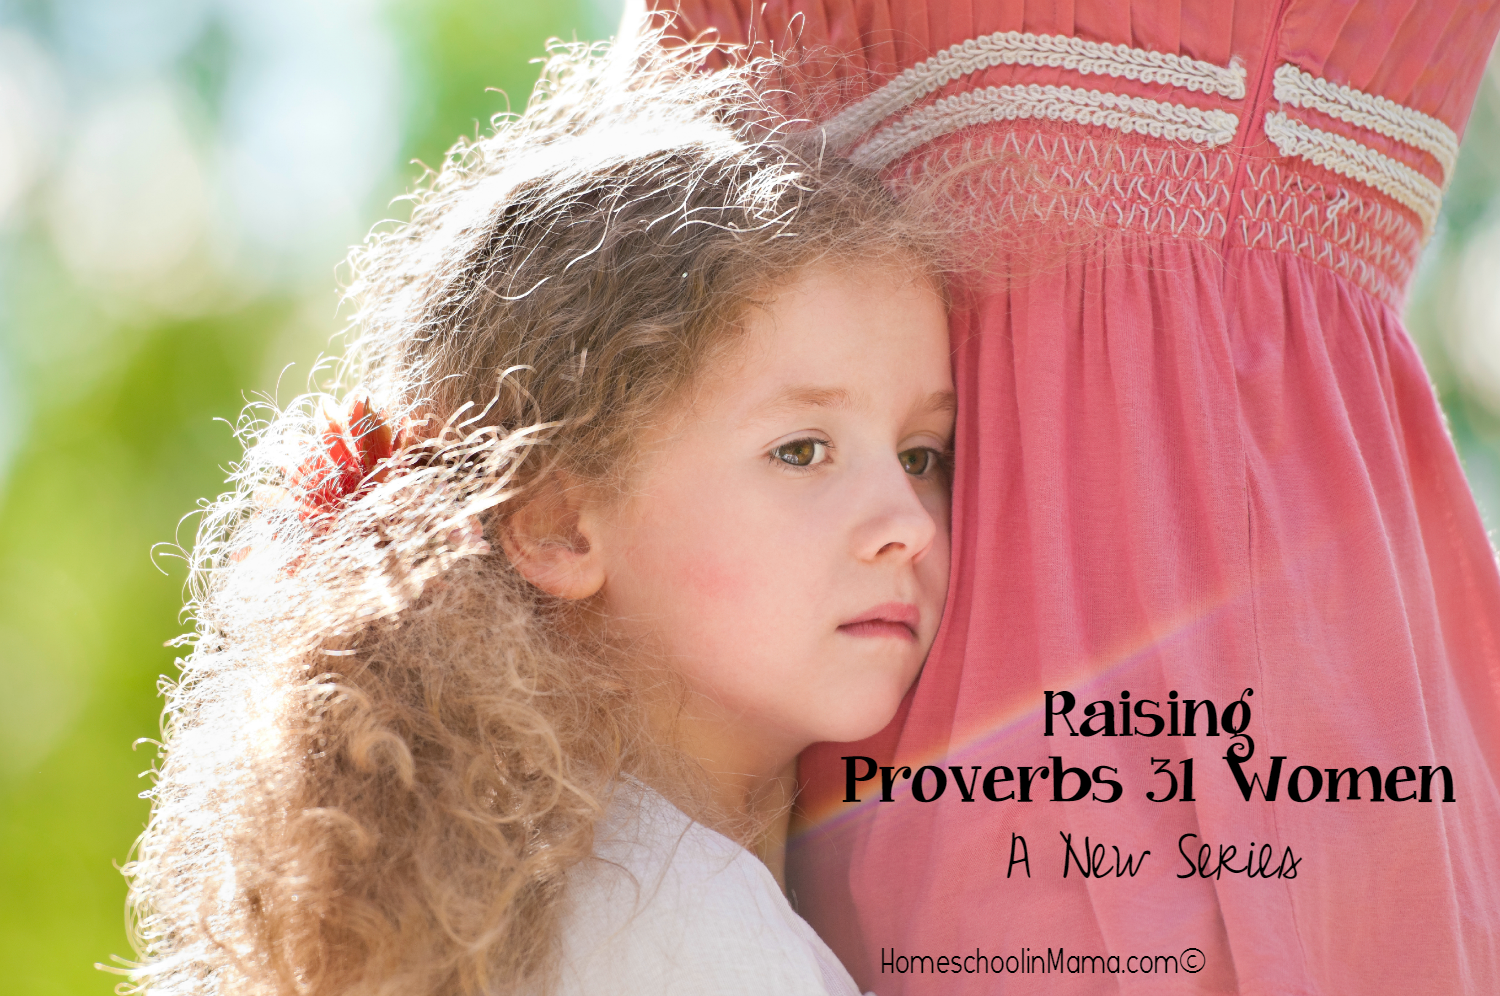 Raising Proverbs 31 Women - A New Series